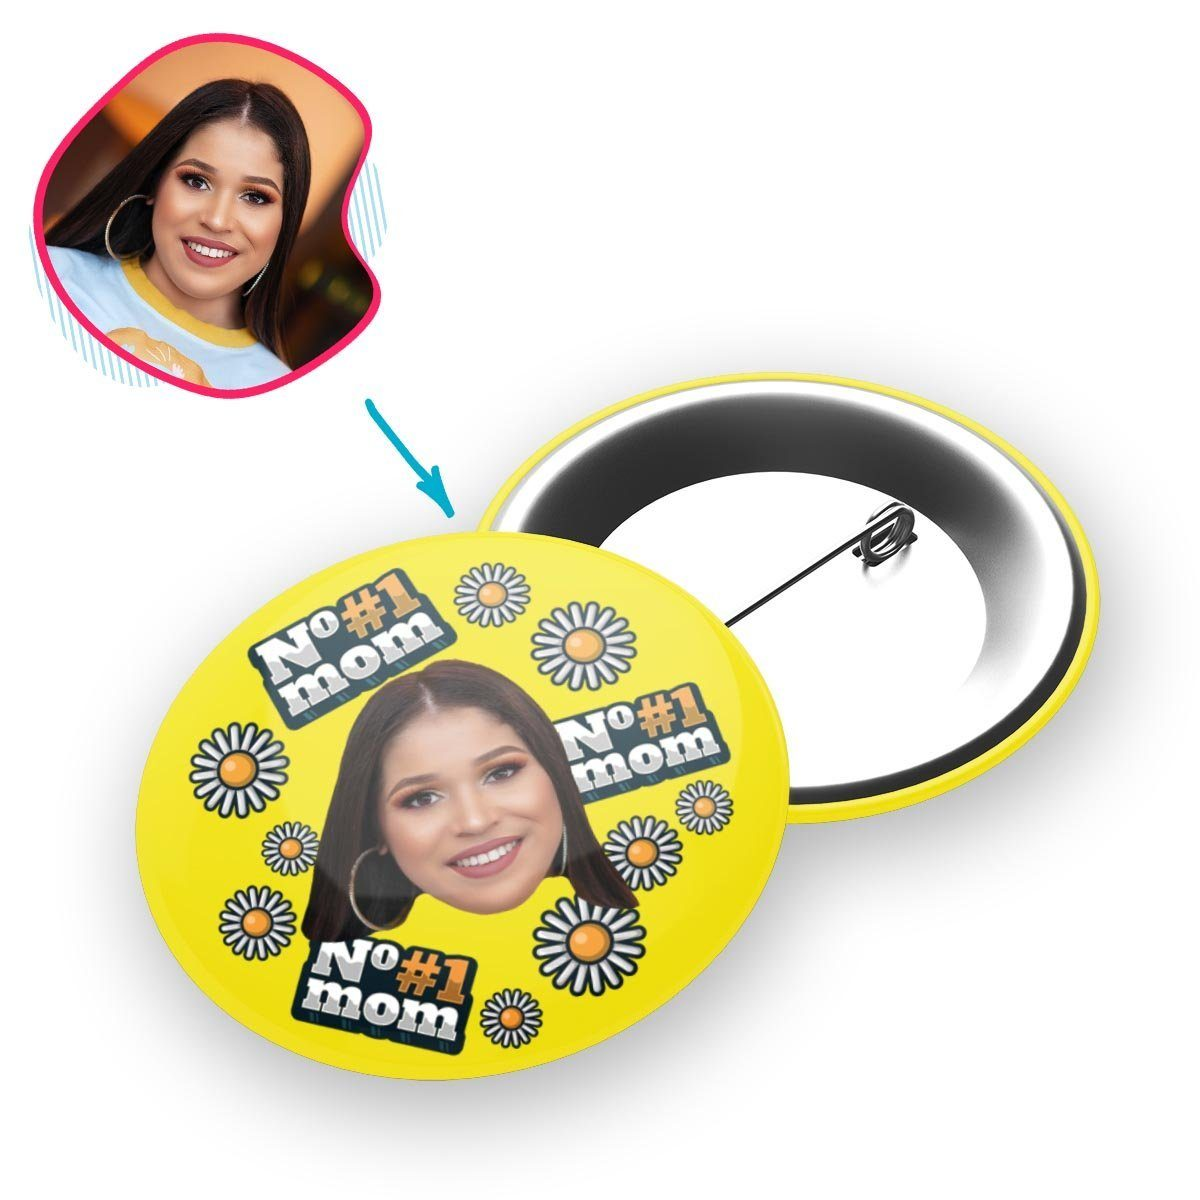 yellow #1 Mom pin personalized with photo of face printed on it